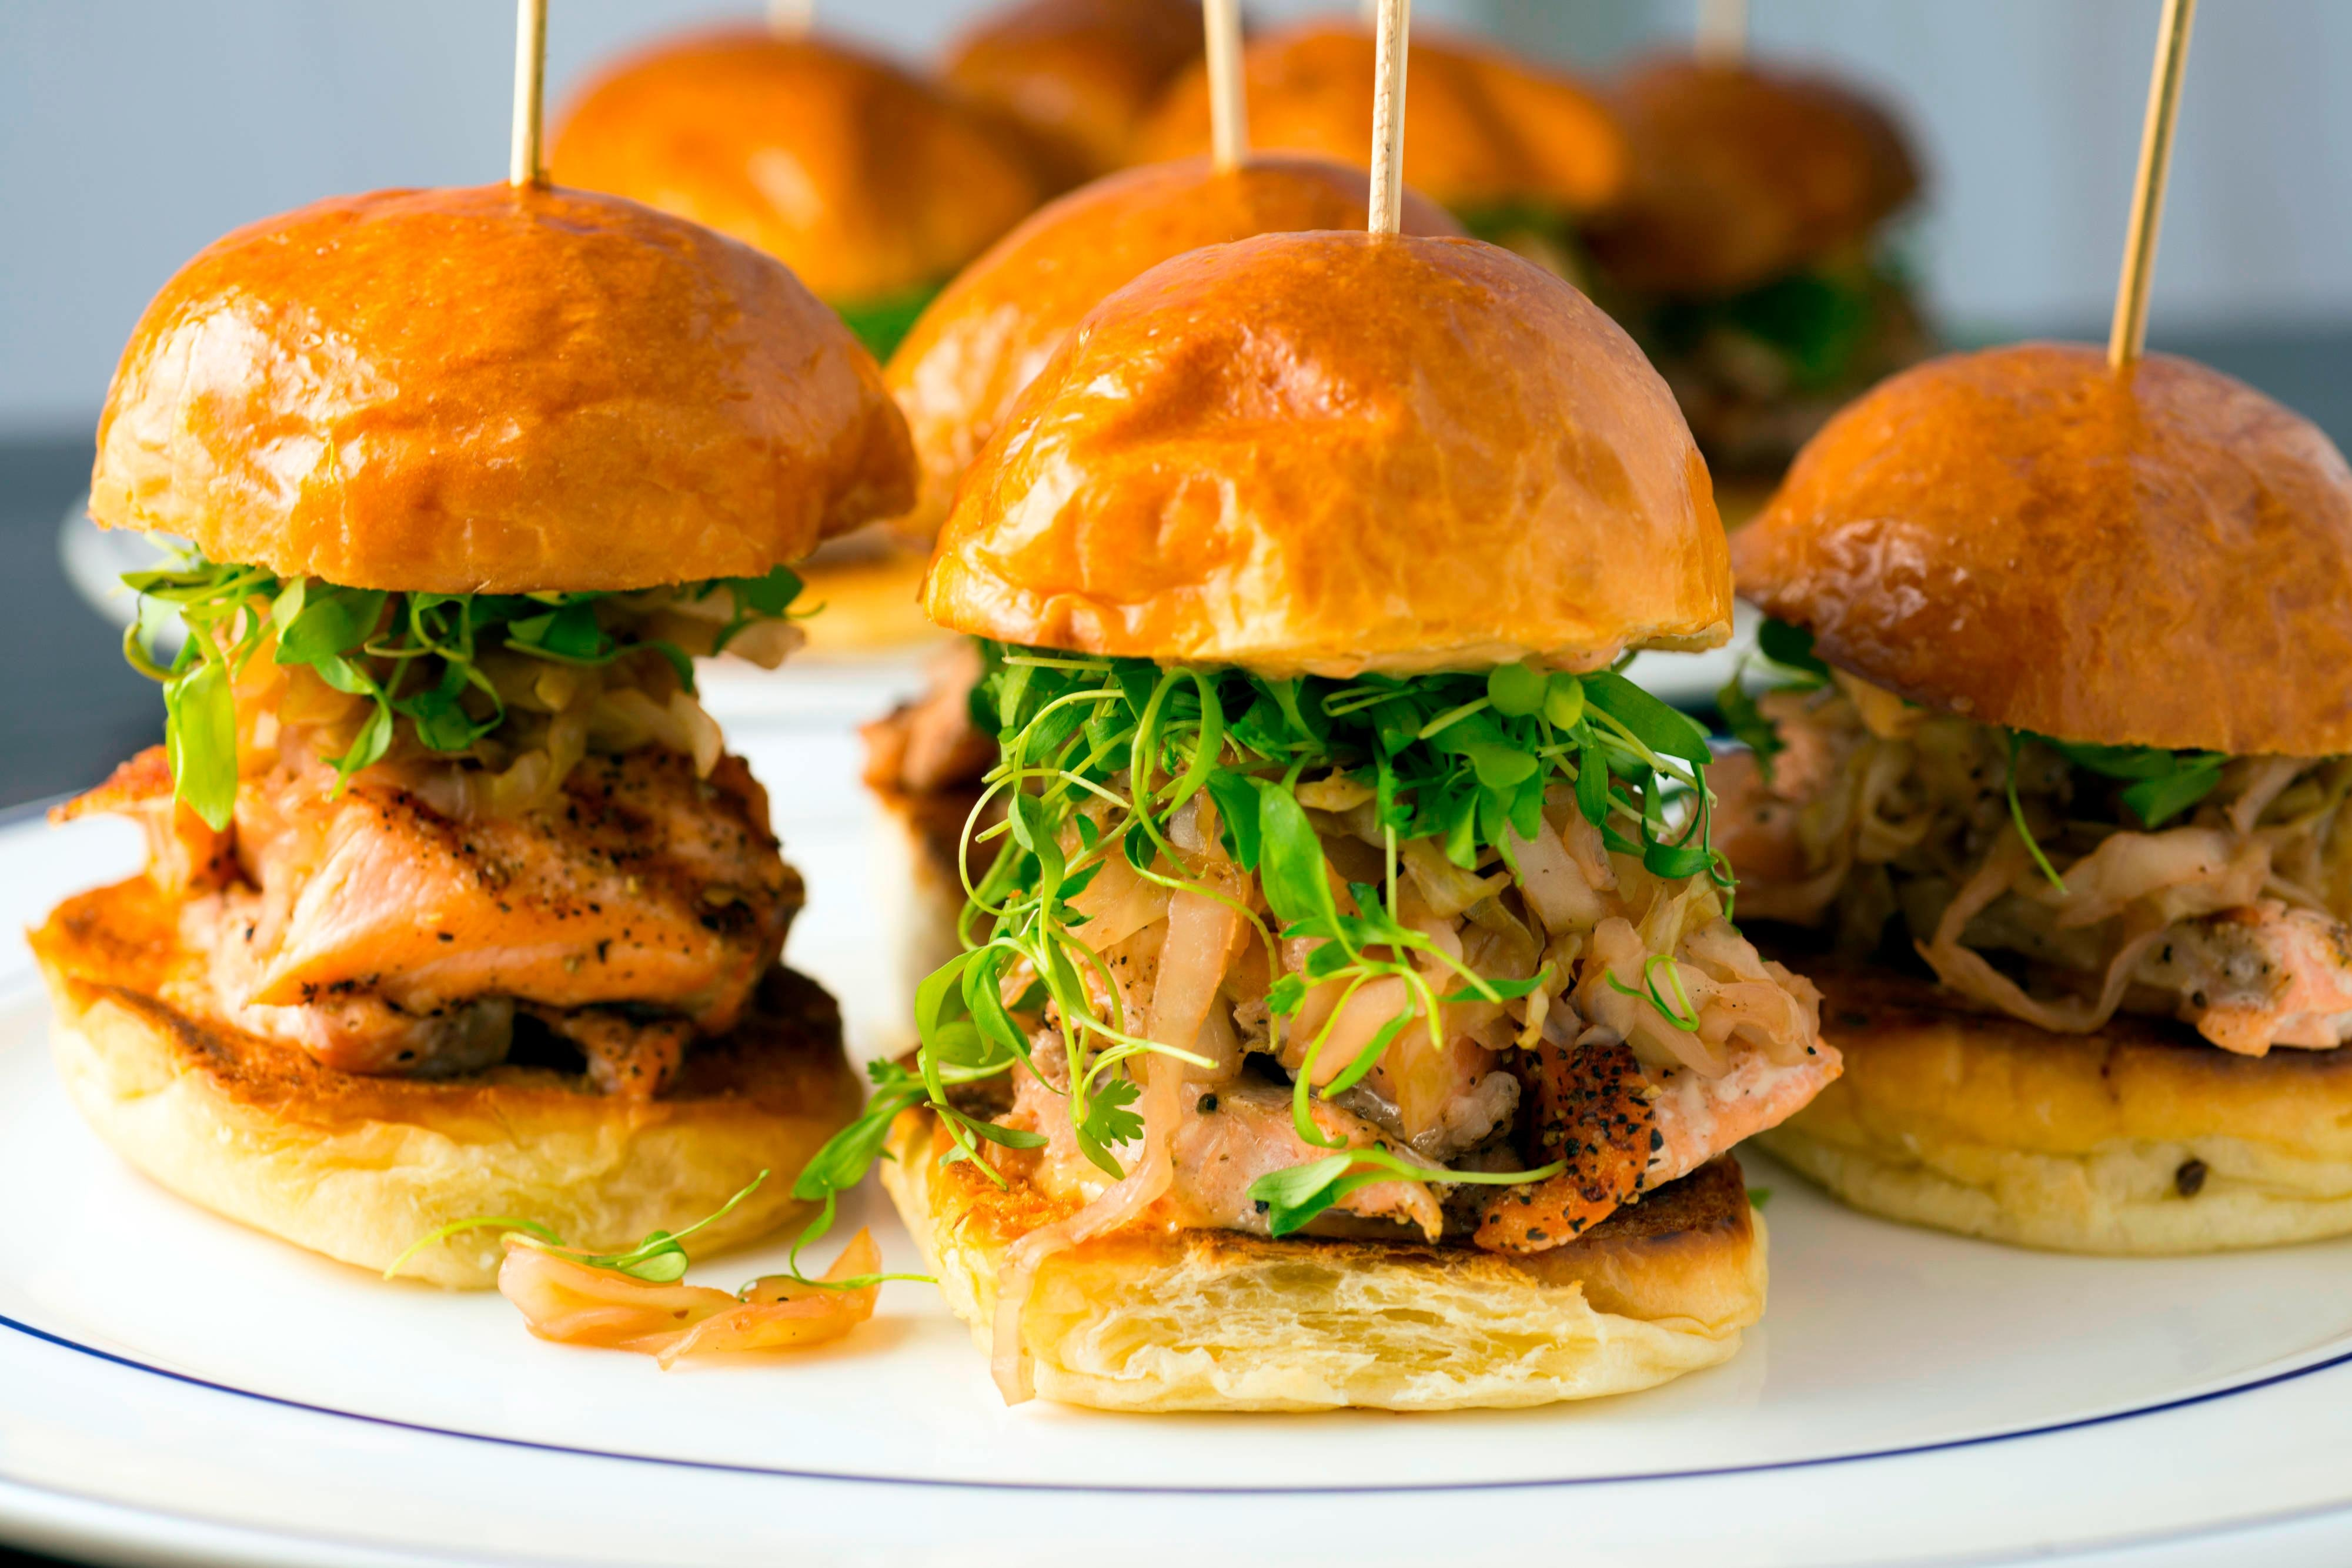 Heritage Grille Steak & Fin – Salmon Sliders